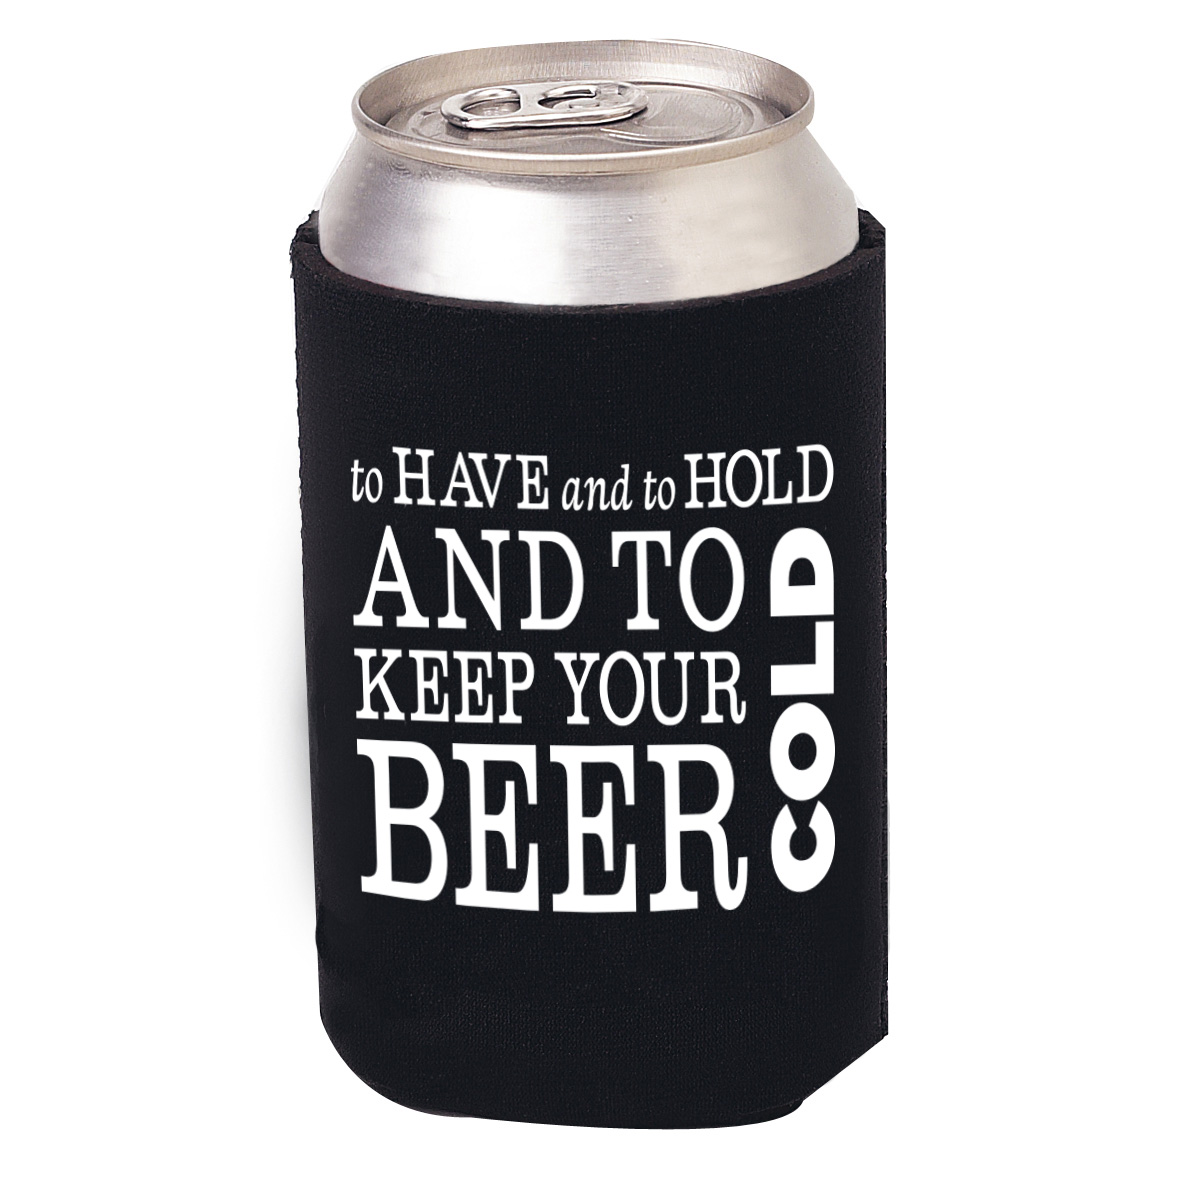 and keep your beer cold